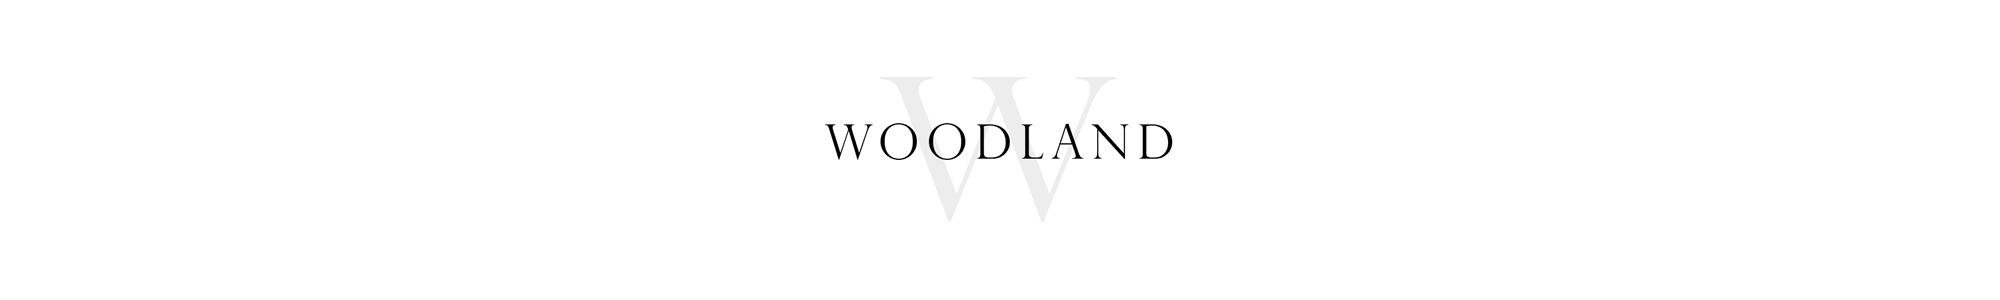 WoodlandLogo